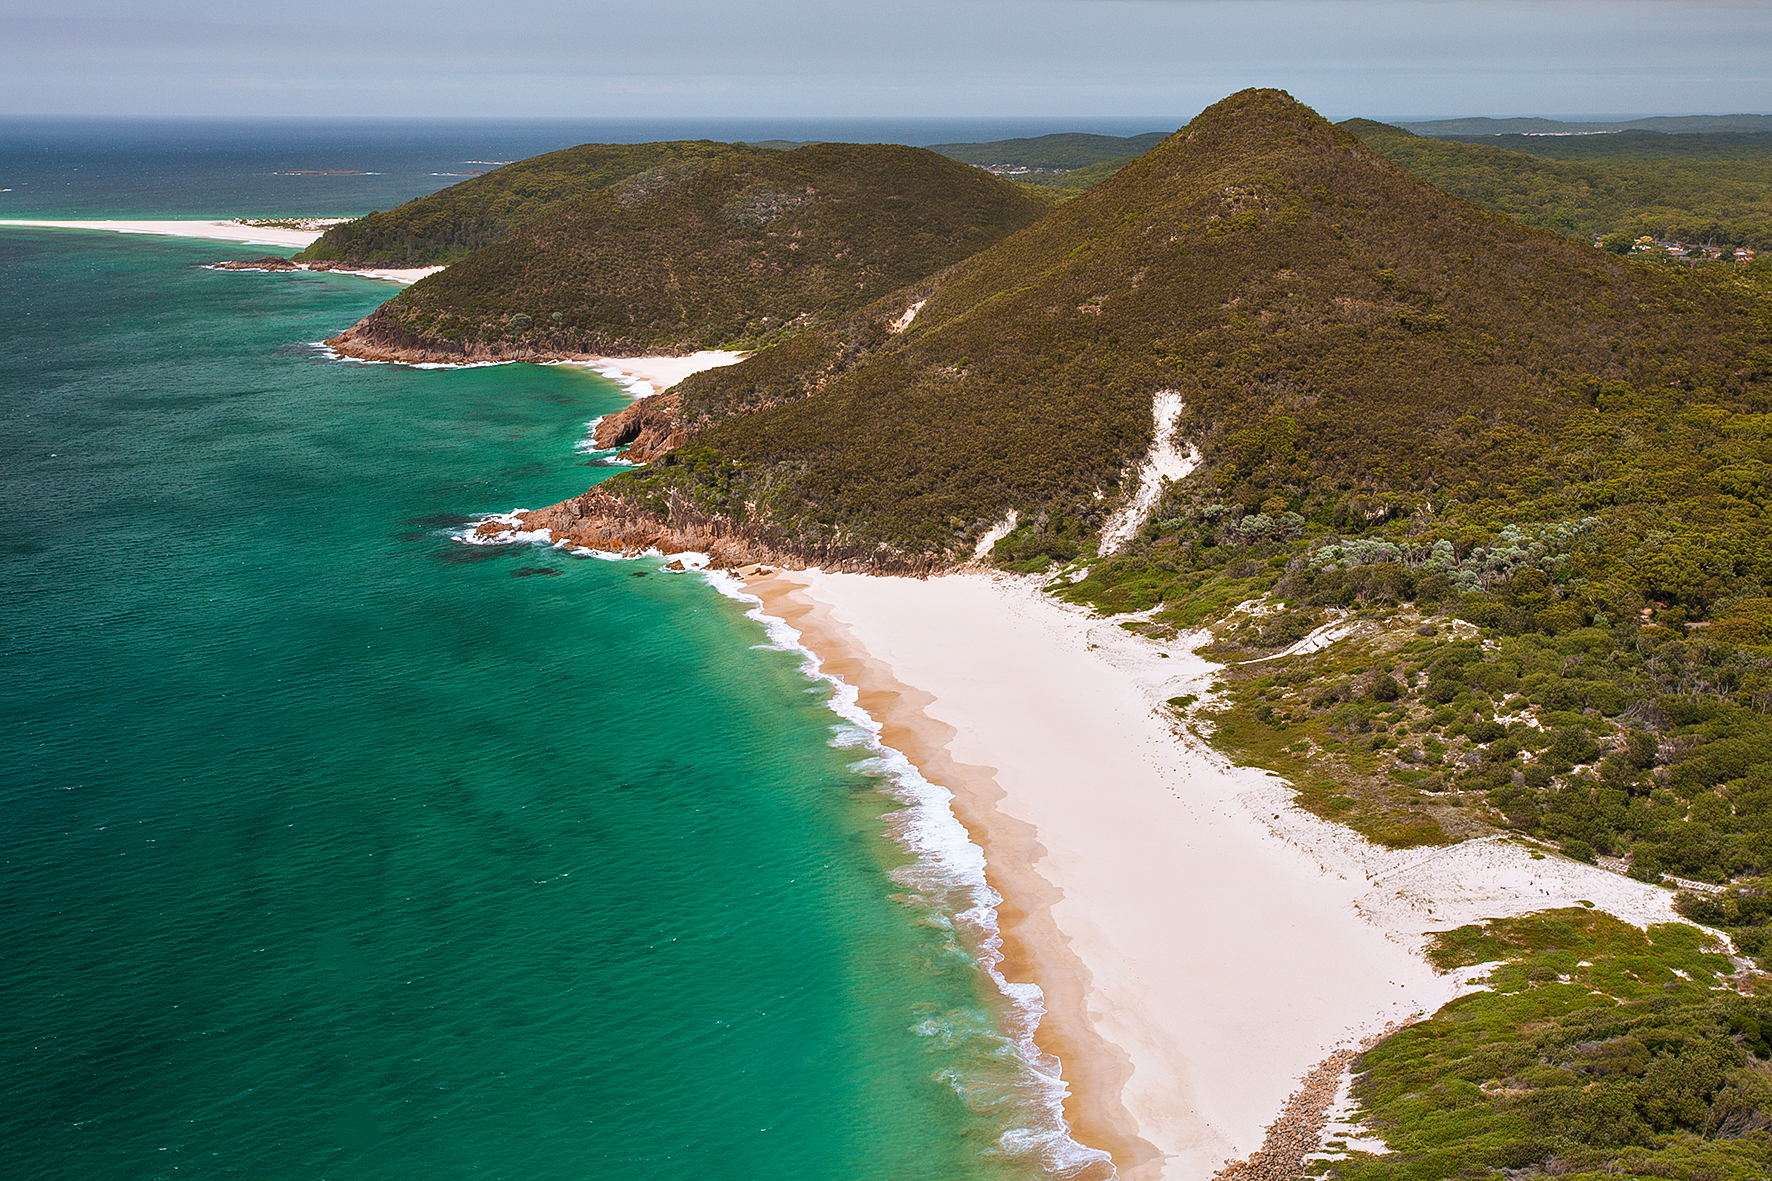 Photograph of Zenith Beach taken from the lookout at the summit of Mount Tomaree